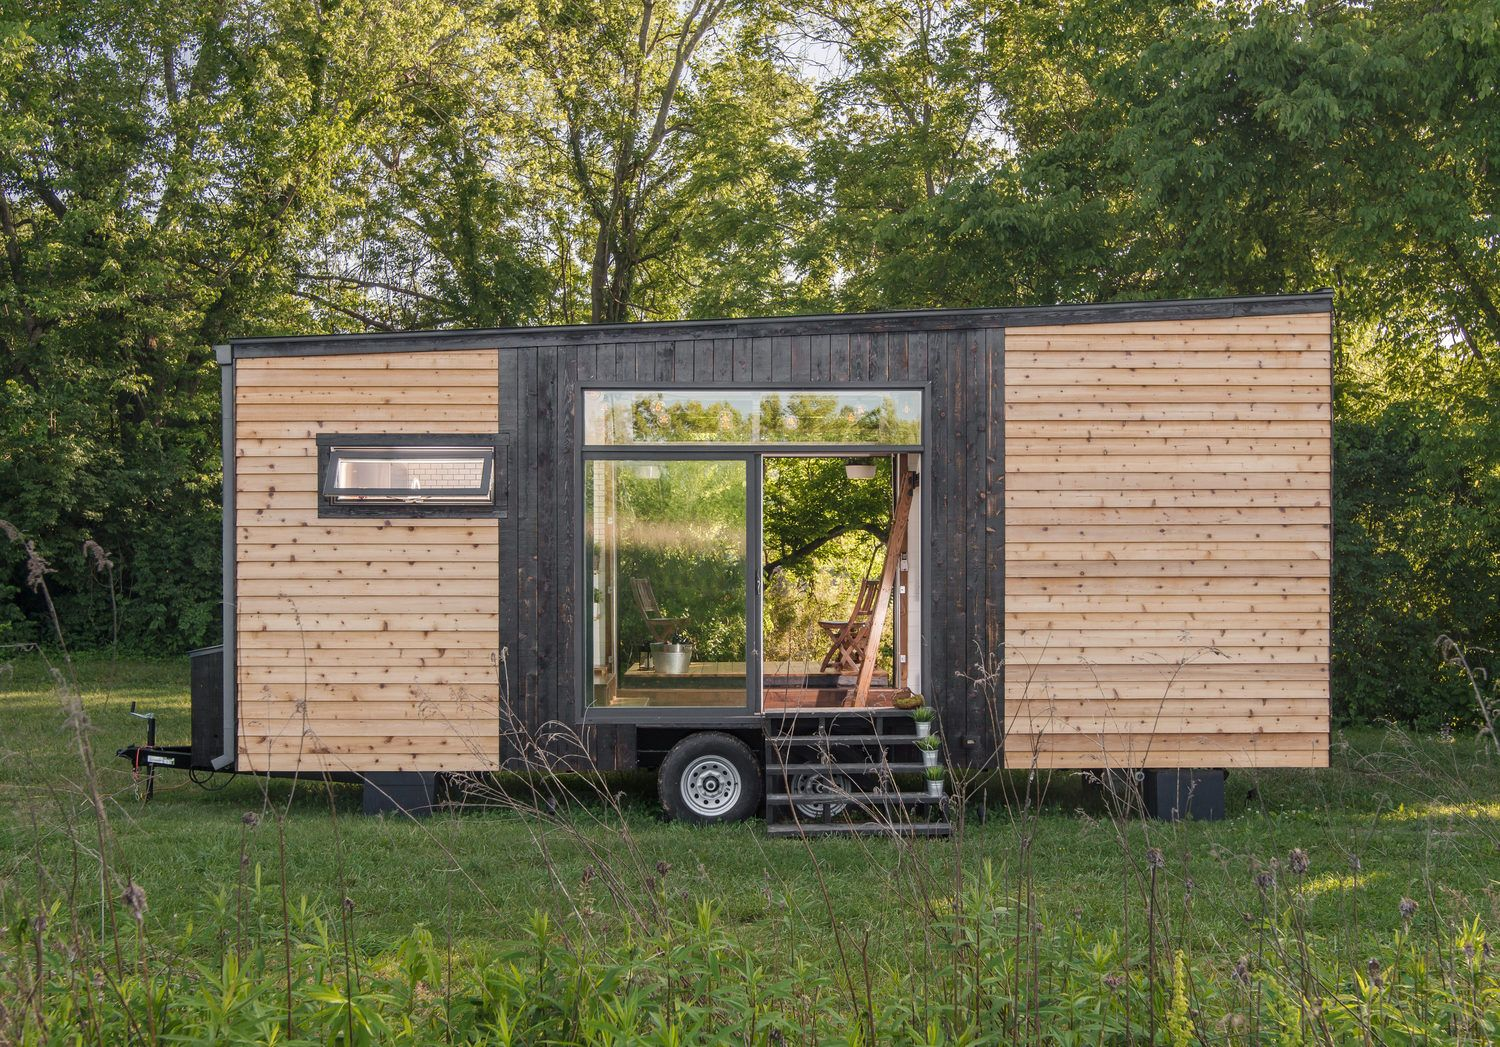 68 Best Tiny Houses - Design Ideas for Small Homes Ultimate Home Designs on ultimate home heating systems, 3d home design, advanced home design, ultimate dream home, modern villa design, cutting edge home design,